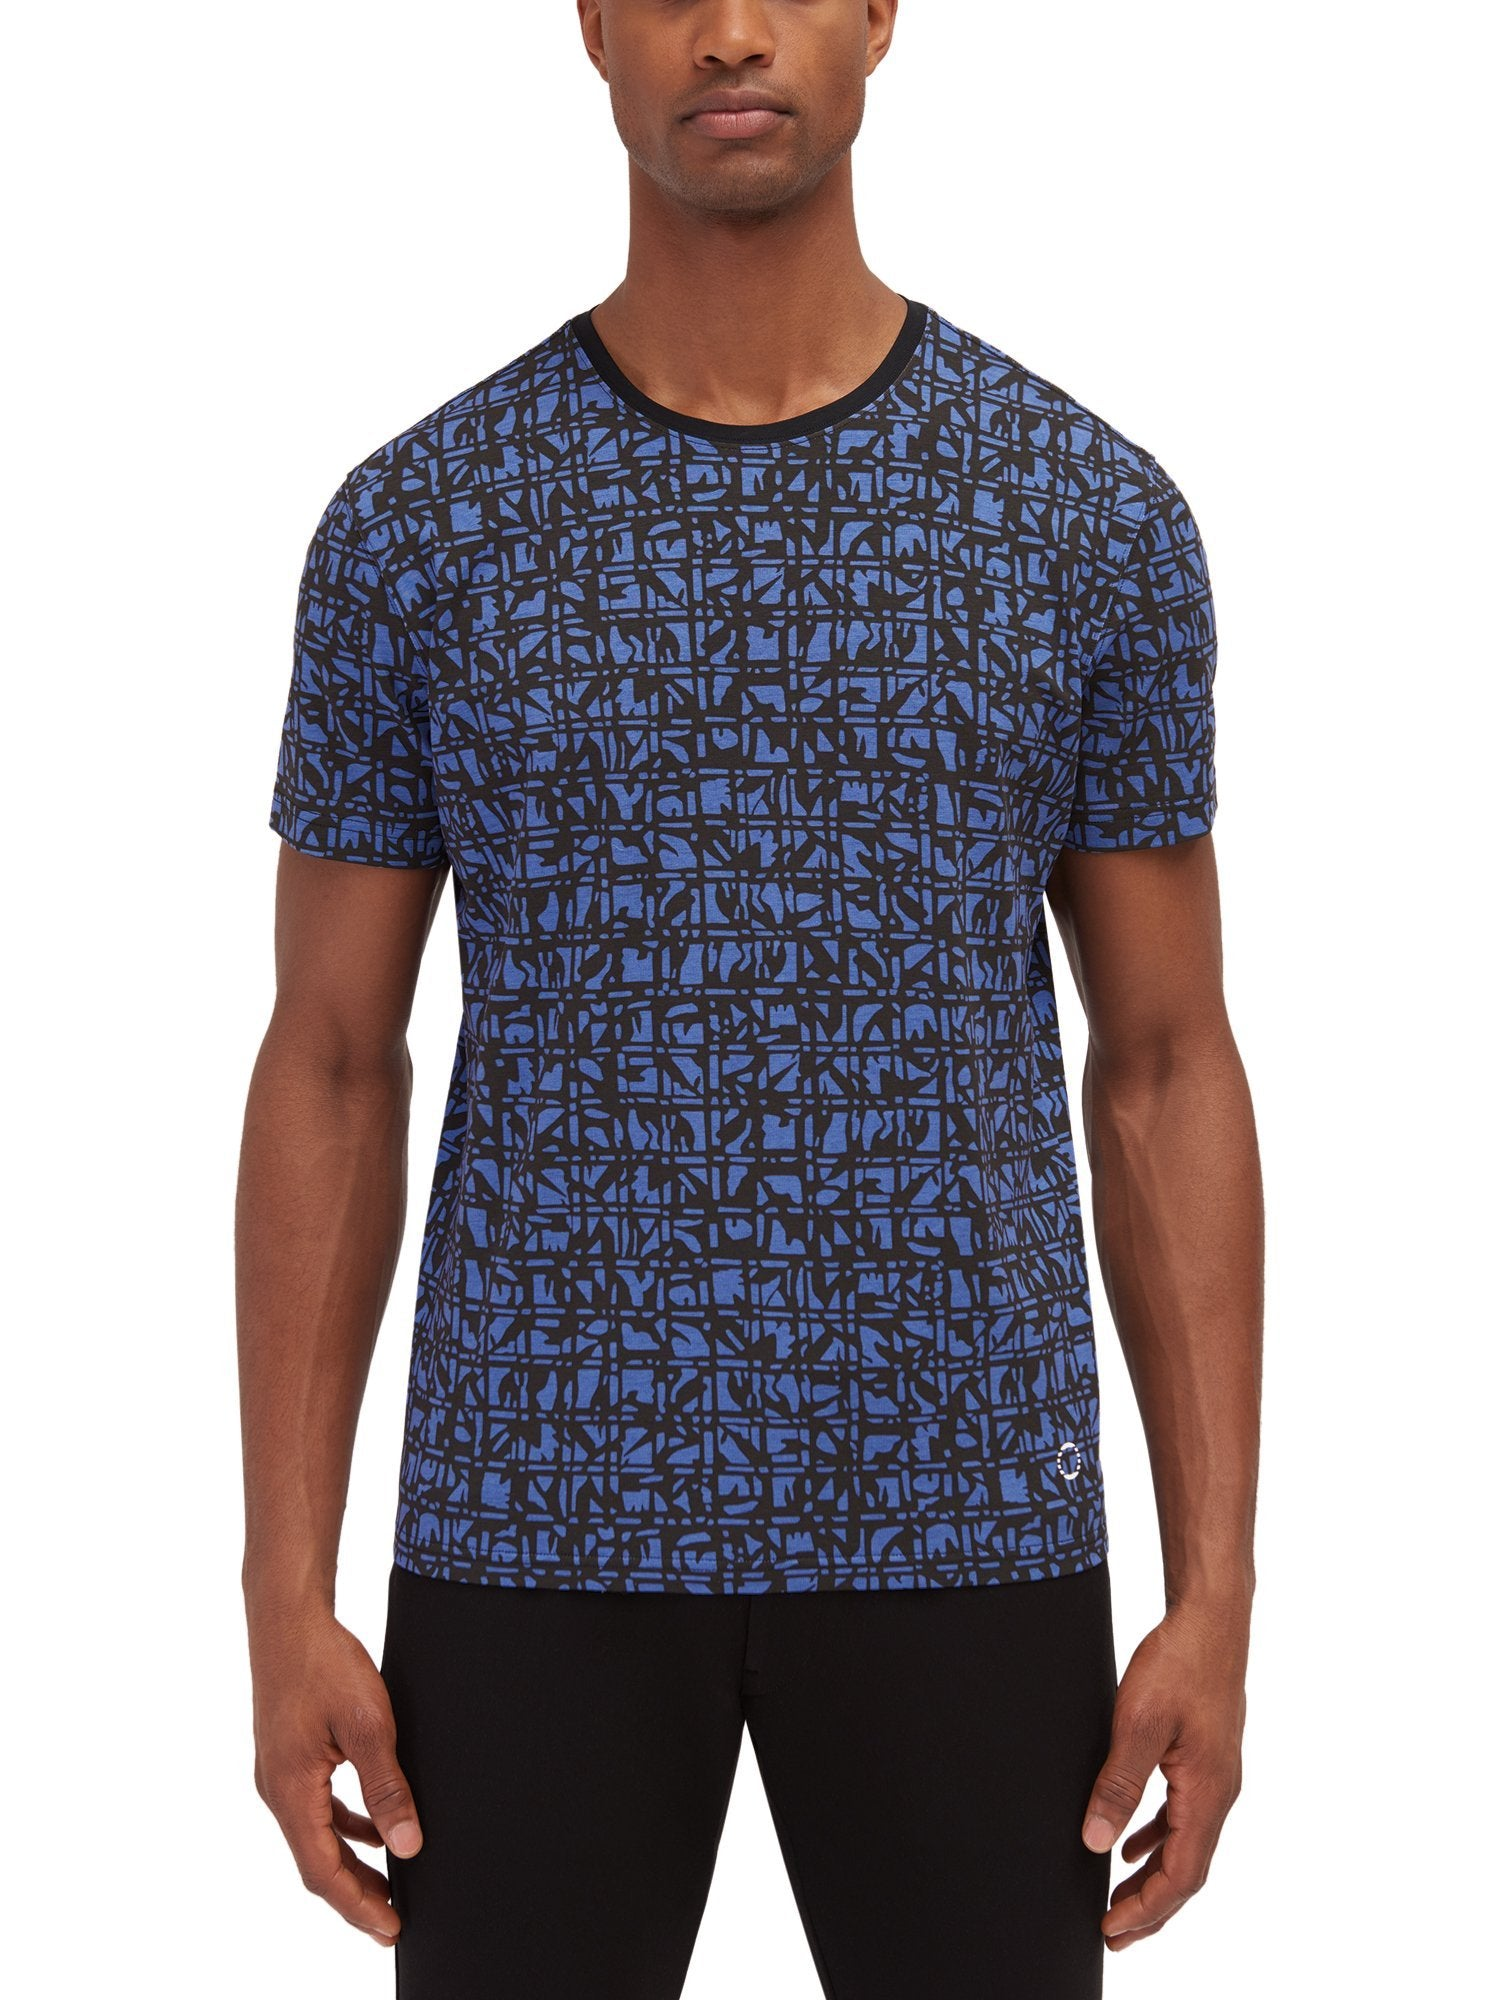 Tookley Printed T-Shirt- EFM Menswear - Engineered For Motion